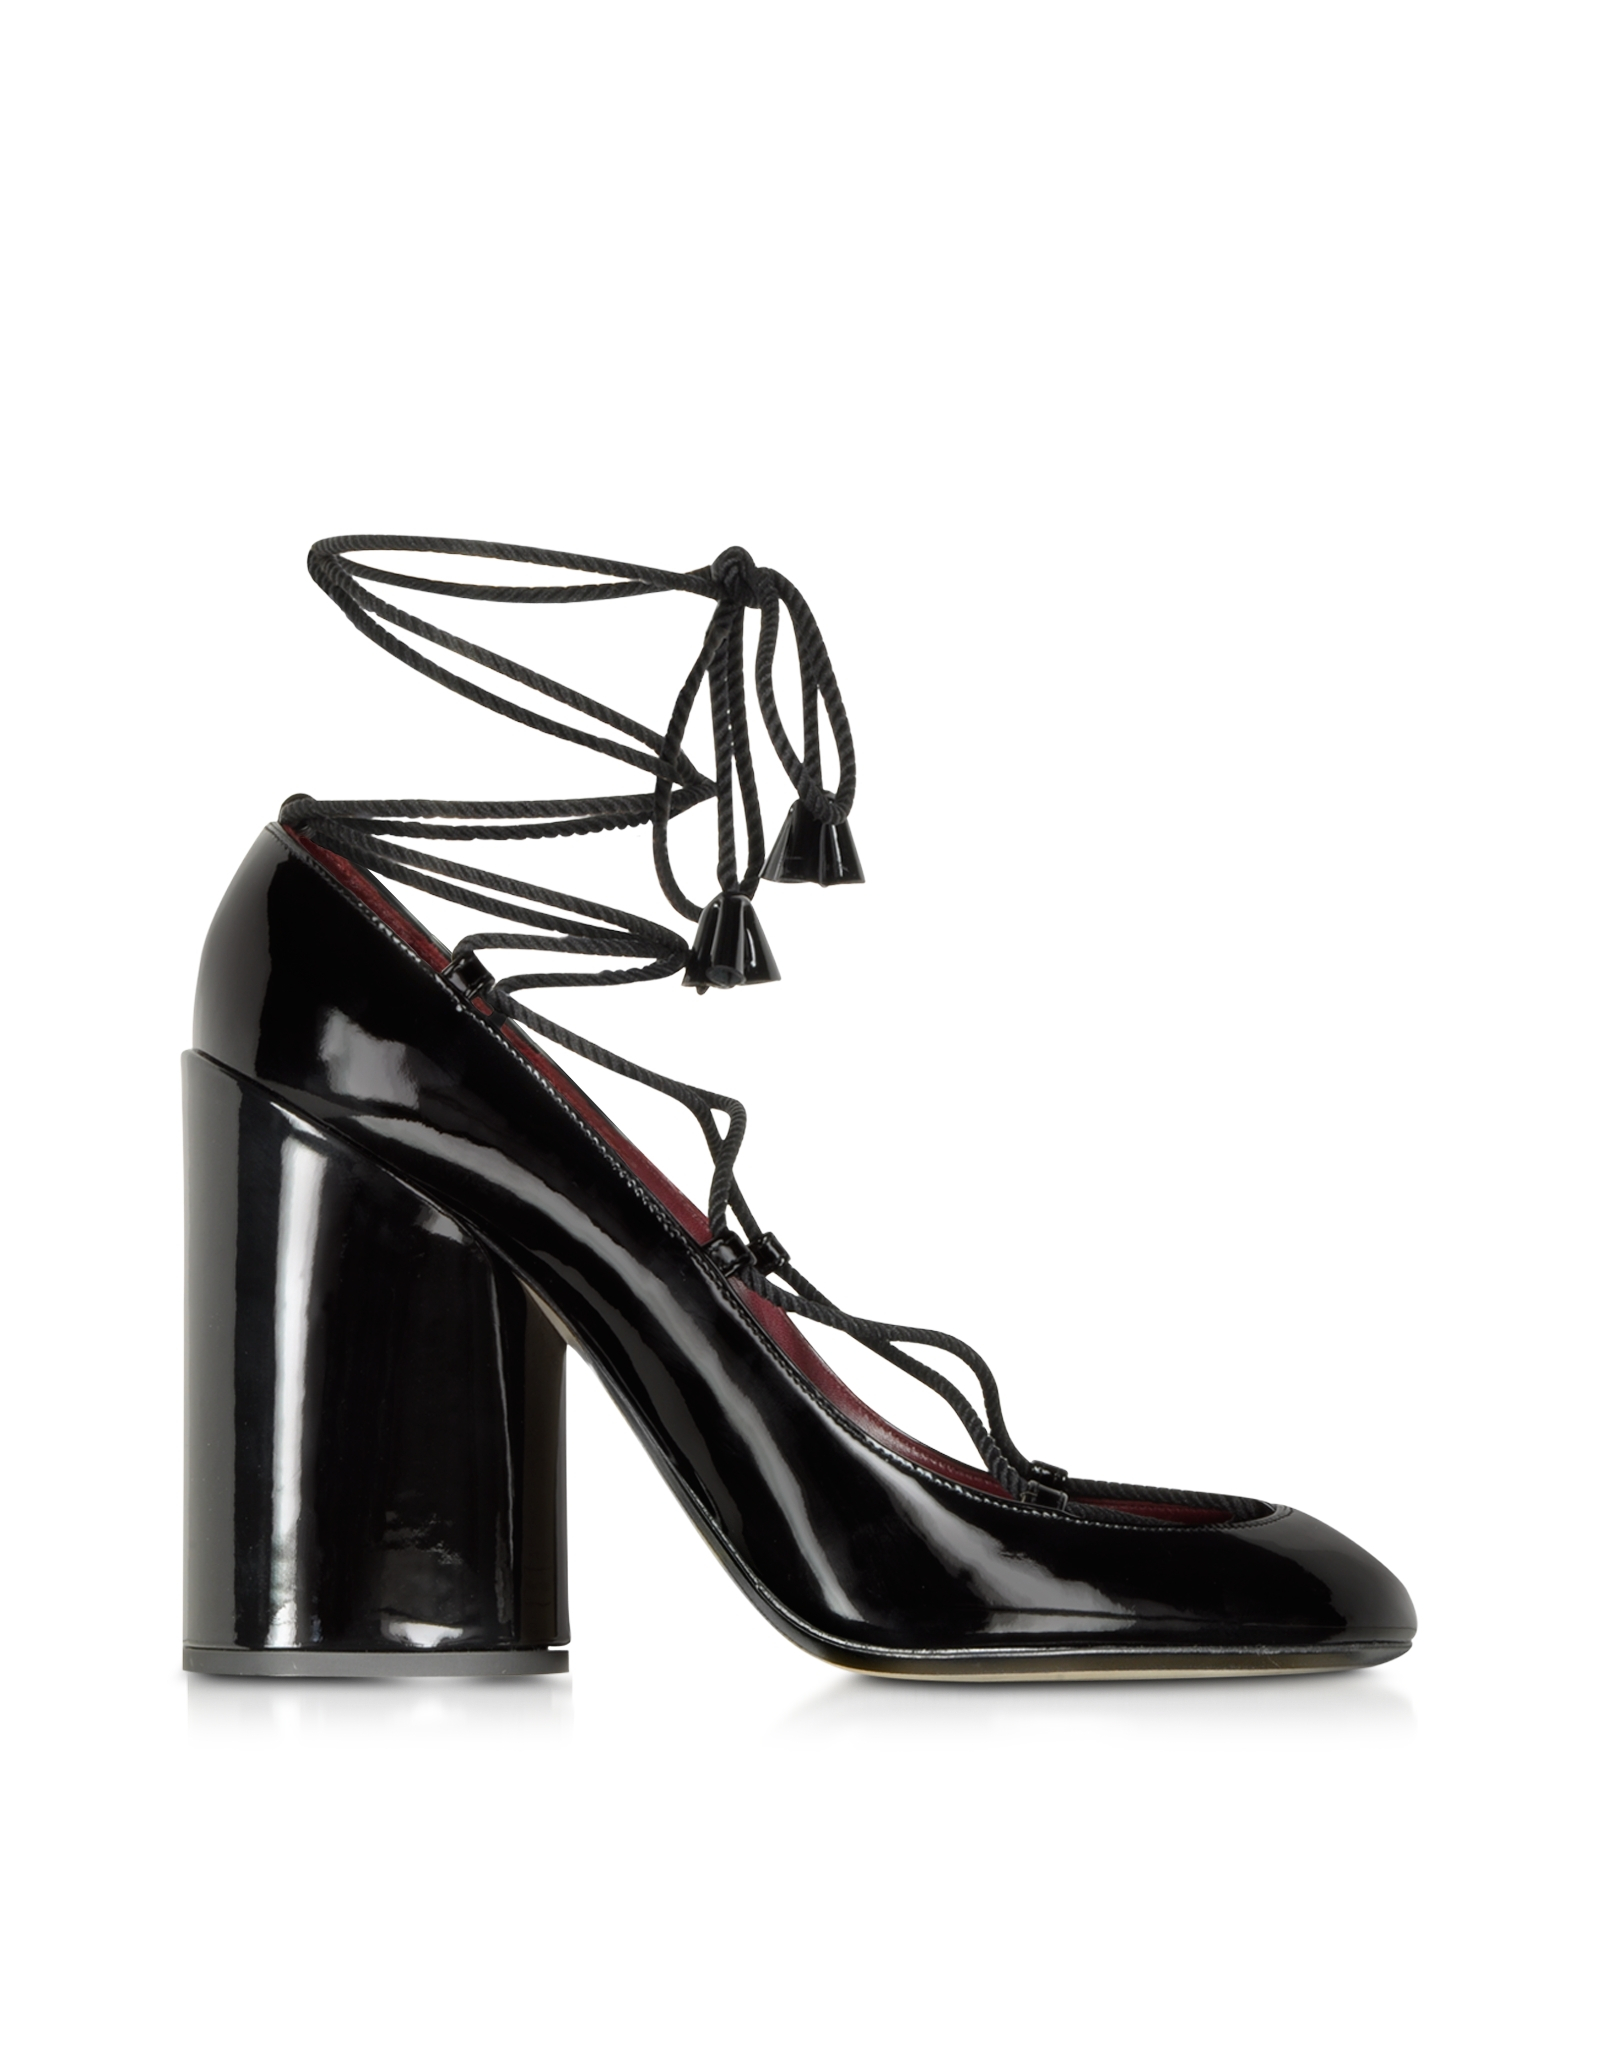 Marc Jacobs Patent Leather Heels Latest Collections Cheap Online Clearance Professional m6igyfzJz